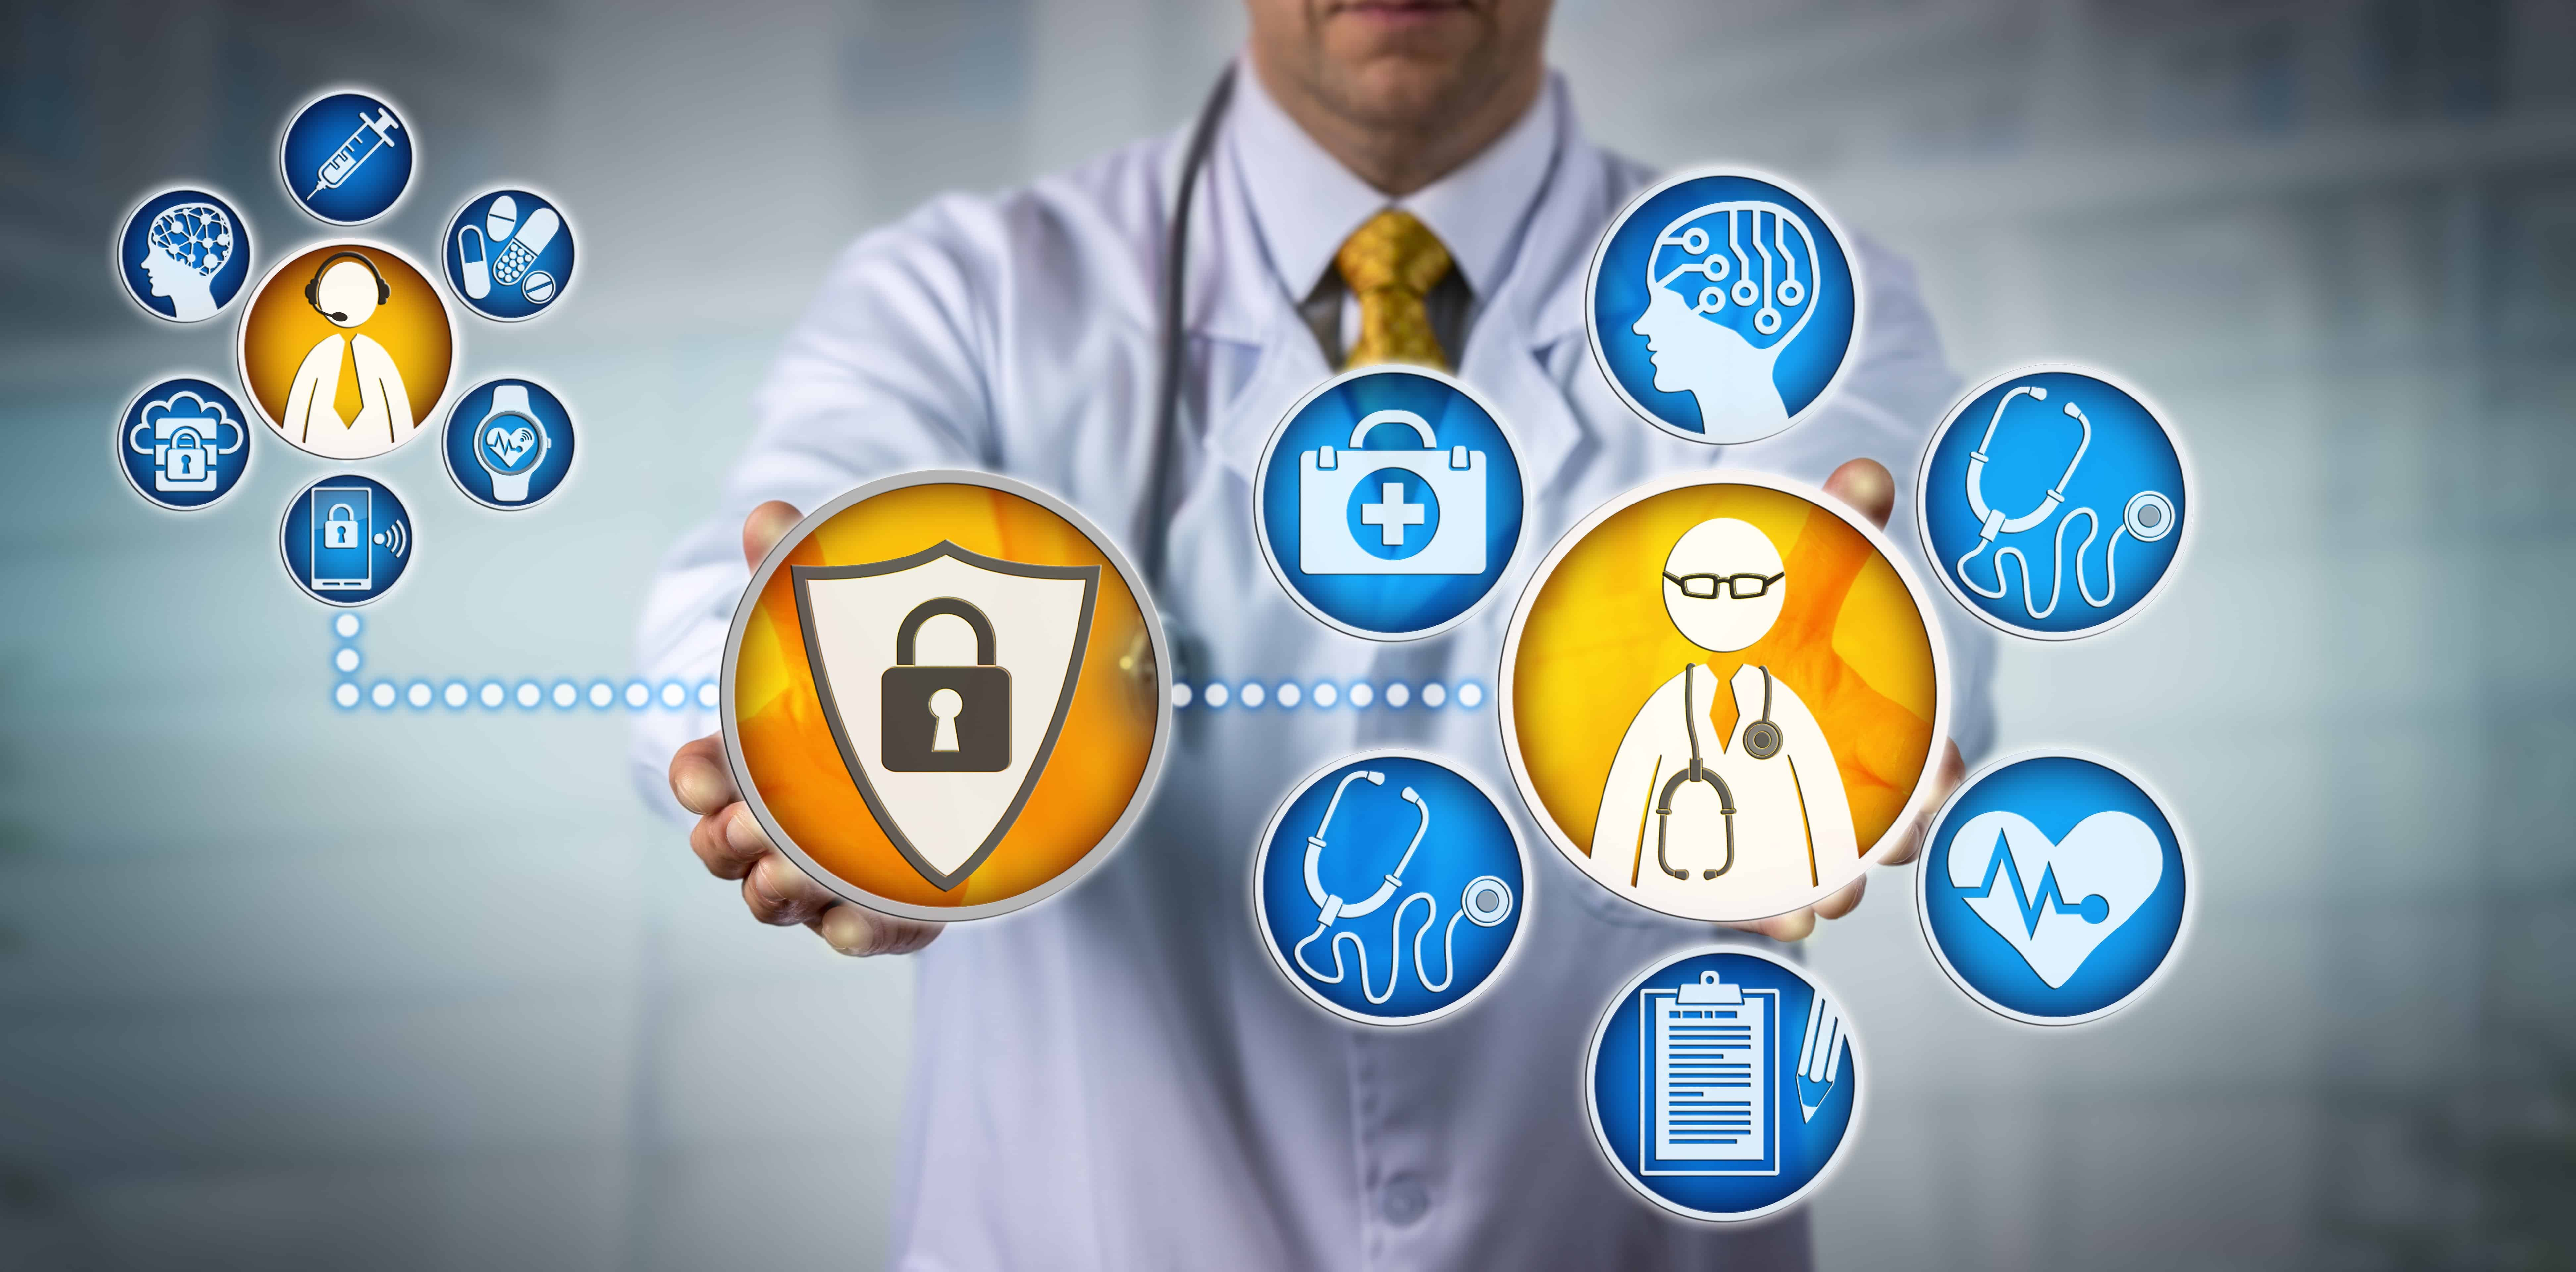 HHS Publishes Healthcare Cyber Security Guidelines Based on NIST CSF